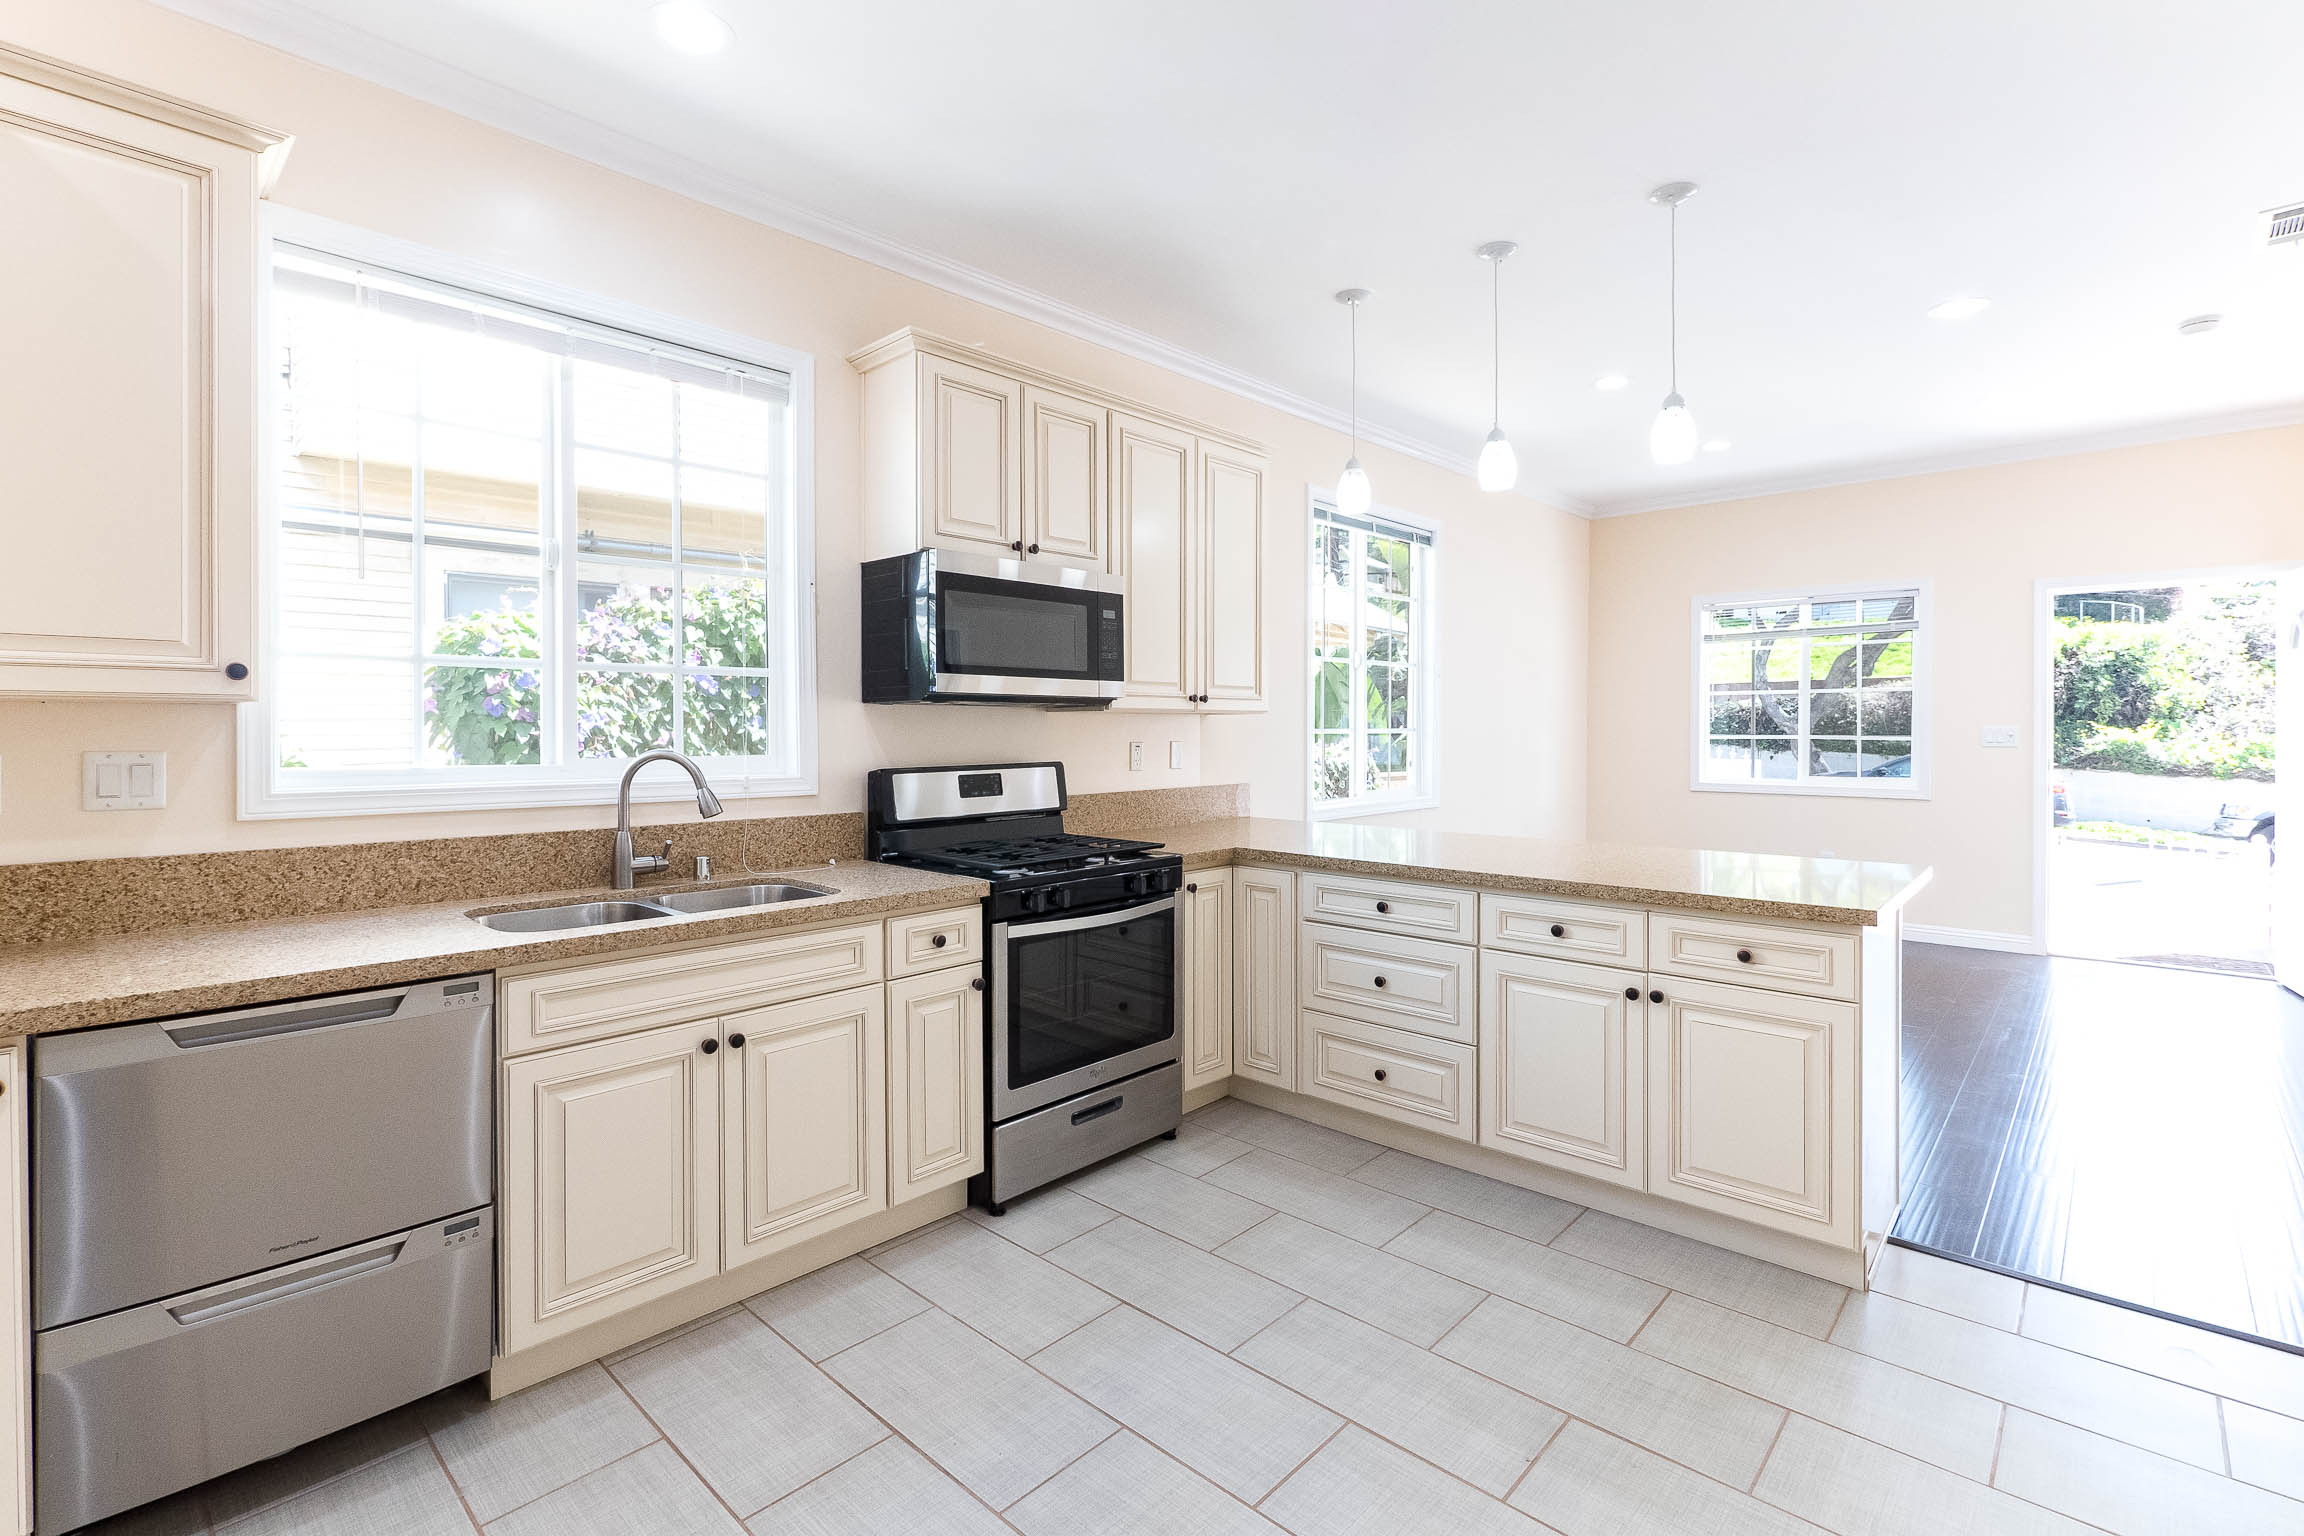 Echo Park Dollhouse | Complete Remodel | Central Air |All NEW Appliances | In Unit W/D | Parking Included | Pet Friendly